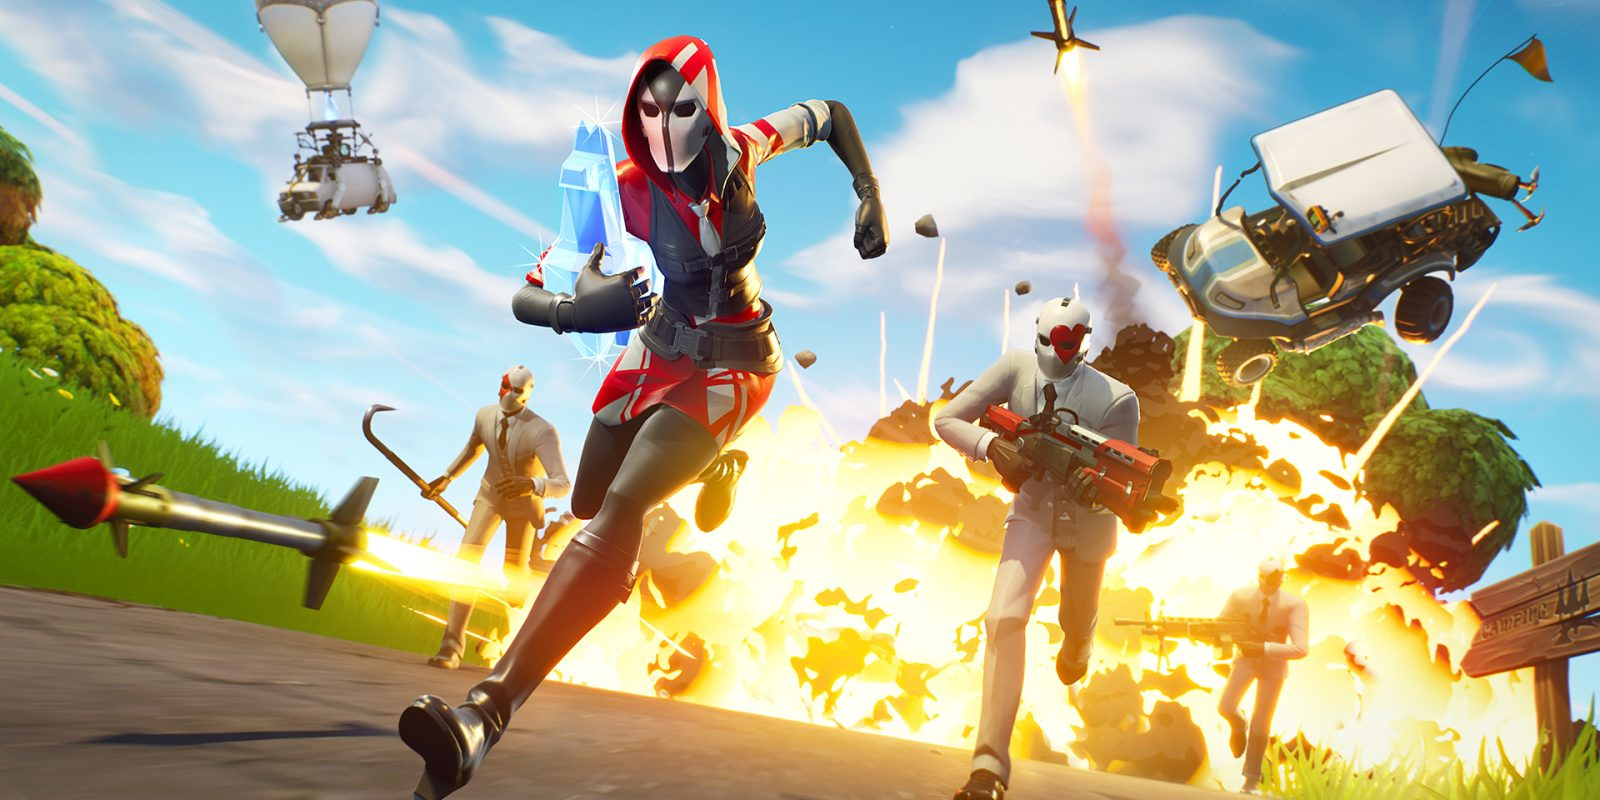 Fortnite v540 for android adds voice chat wider device support fortnite v540 for android adds voice chat wider device support high stakes event ccuart Images